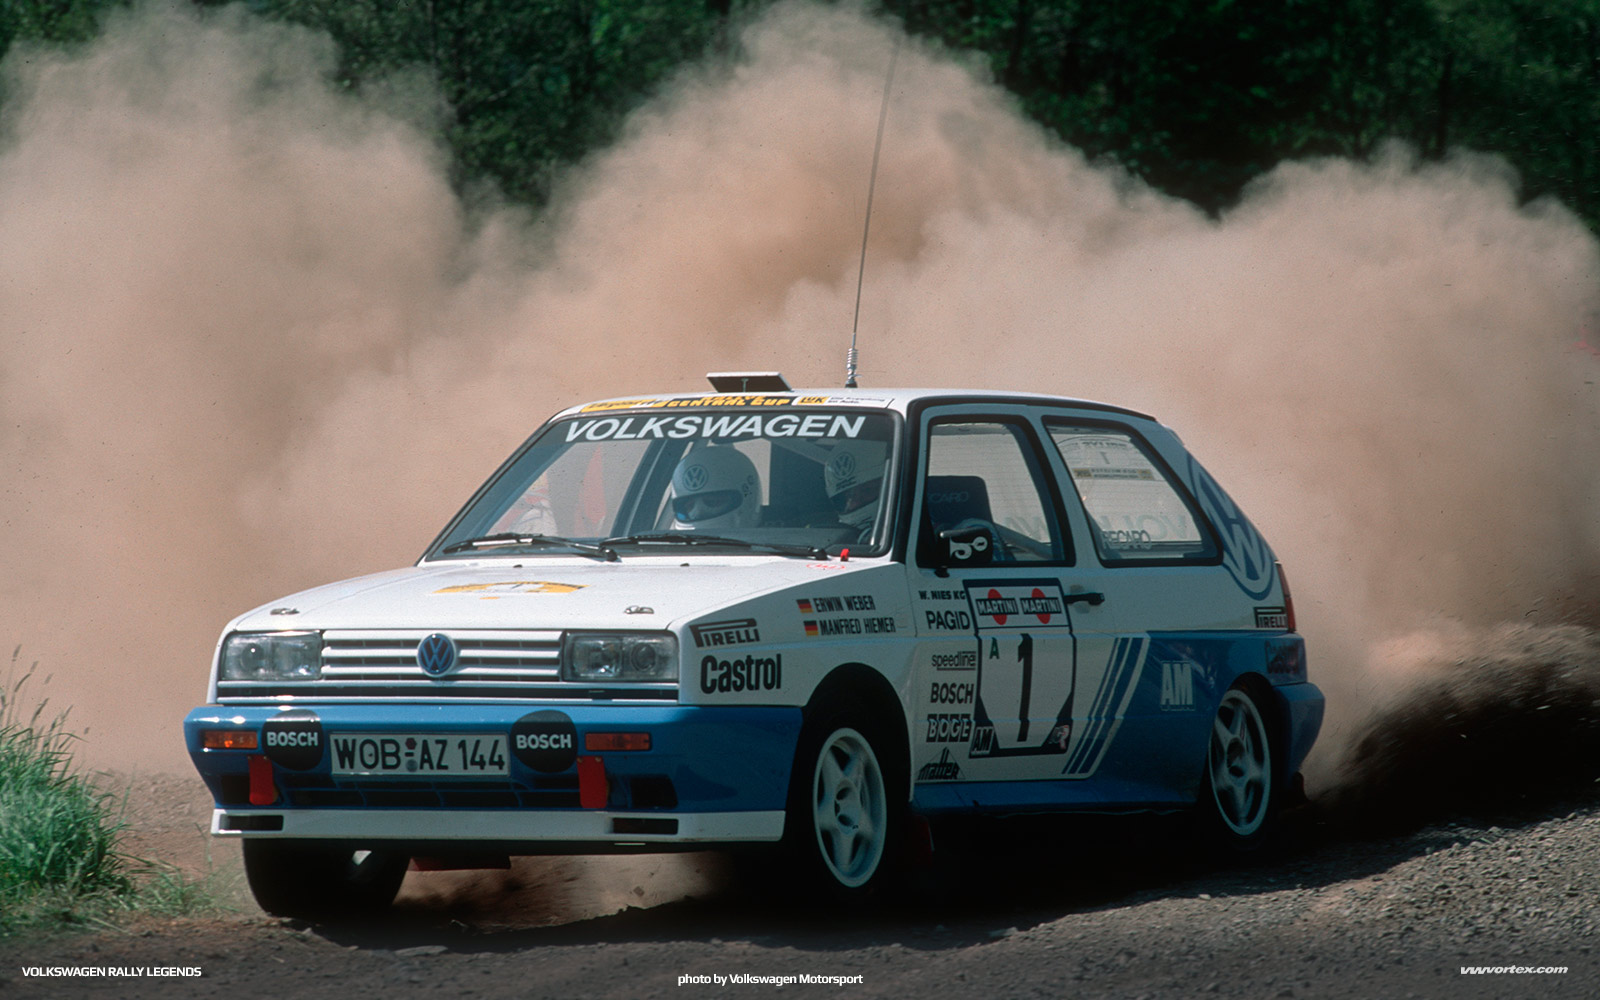 volkswagen-rally-legends-373